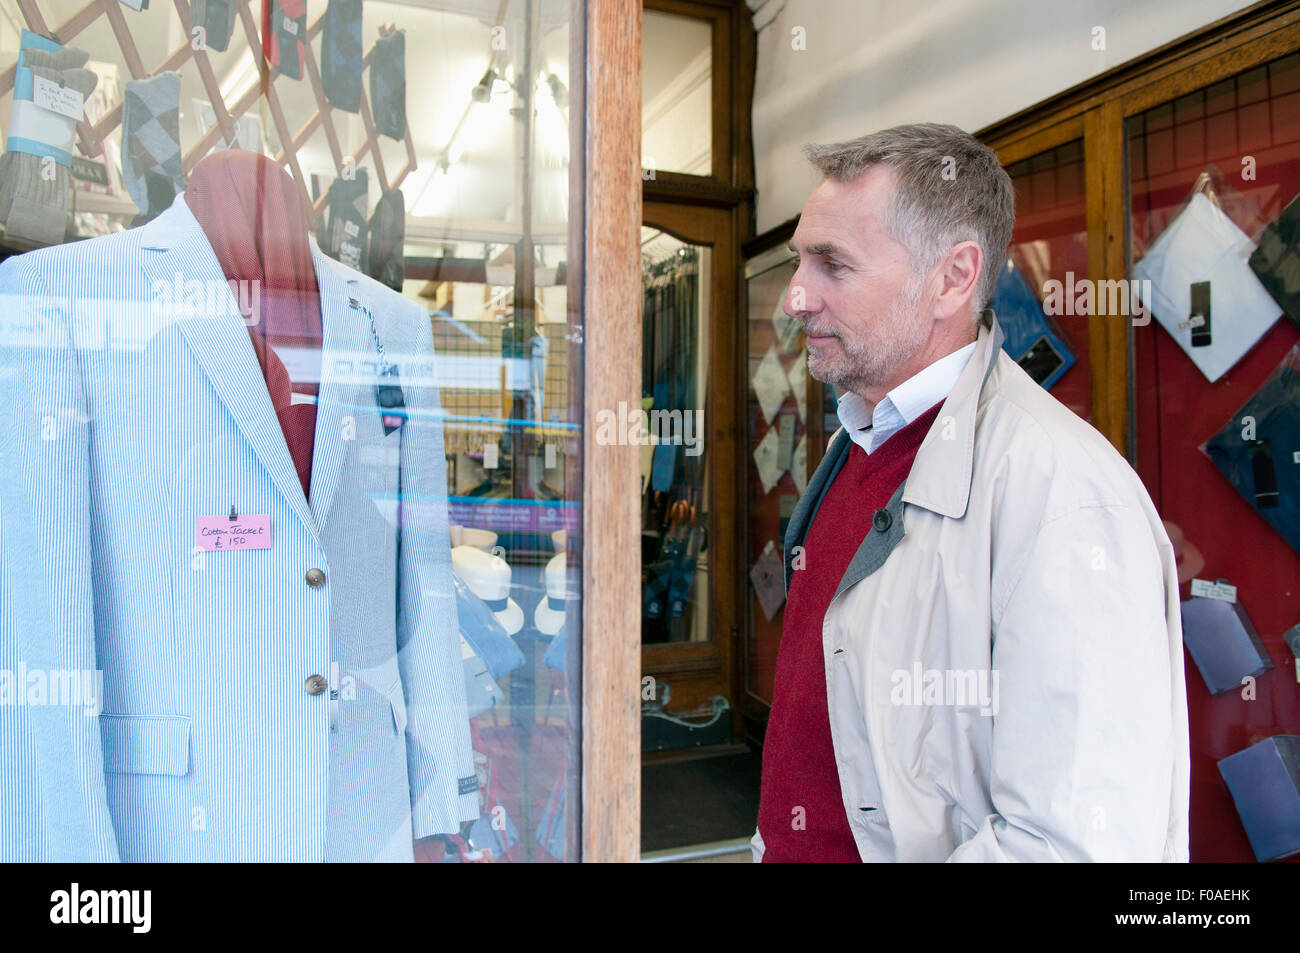 Mature man looking at suit jacket in tailors shop window - Stock Image